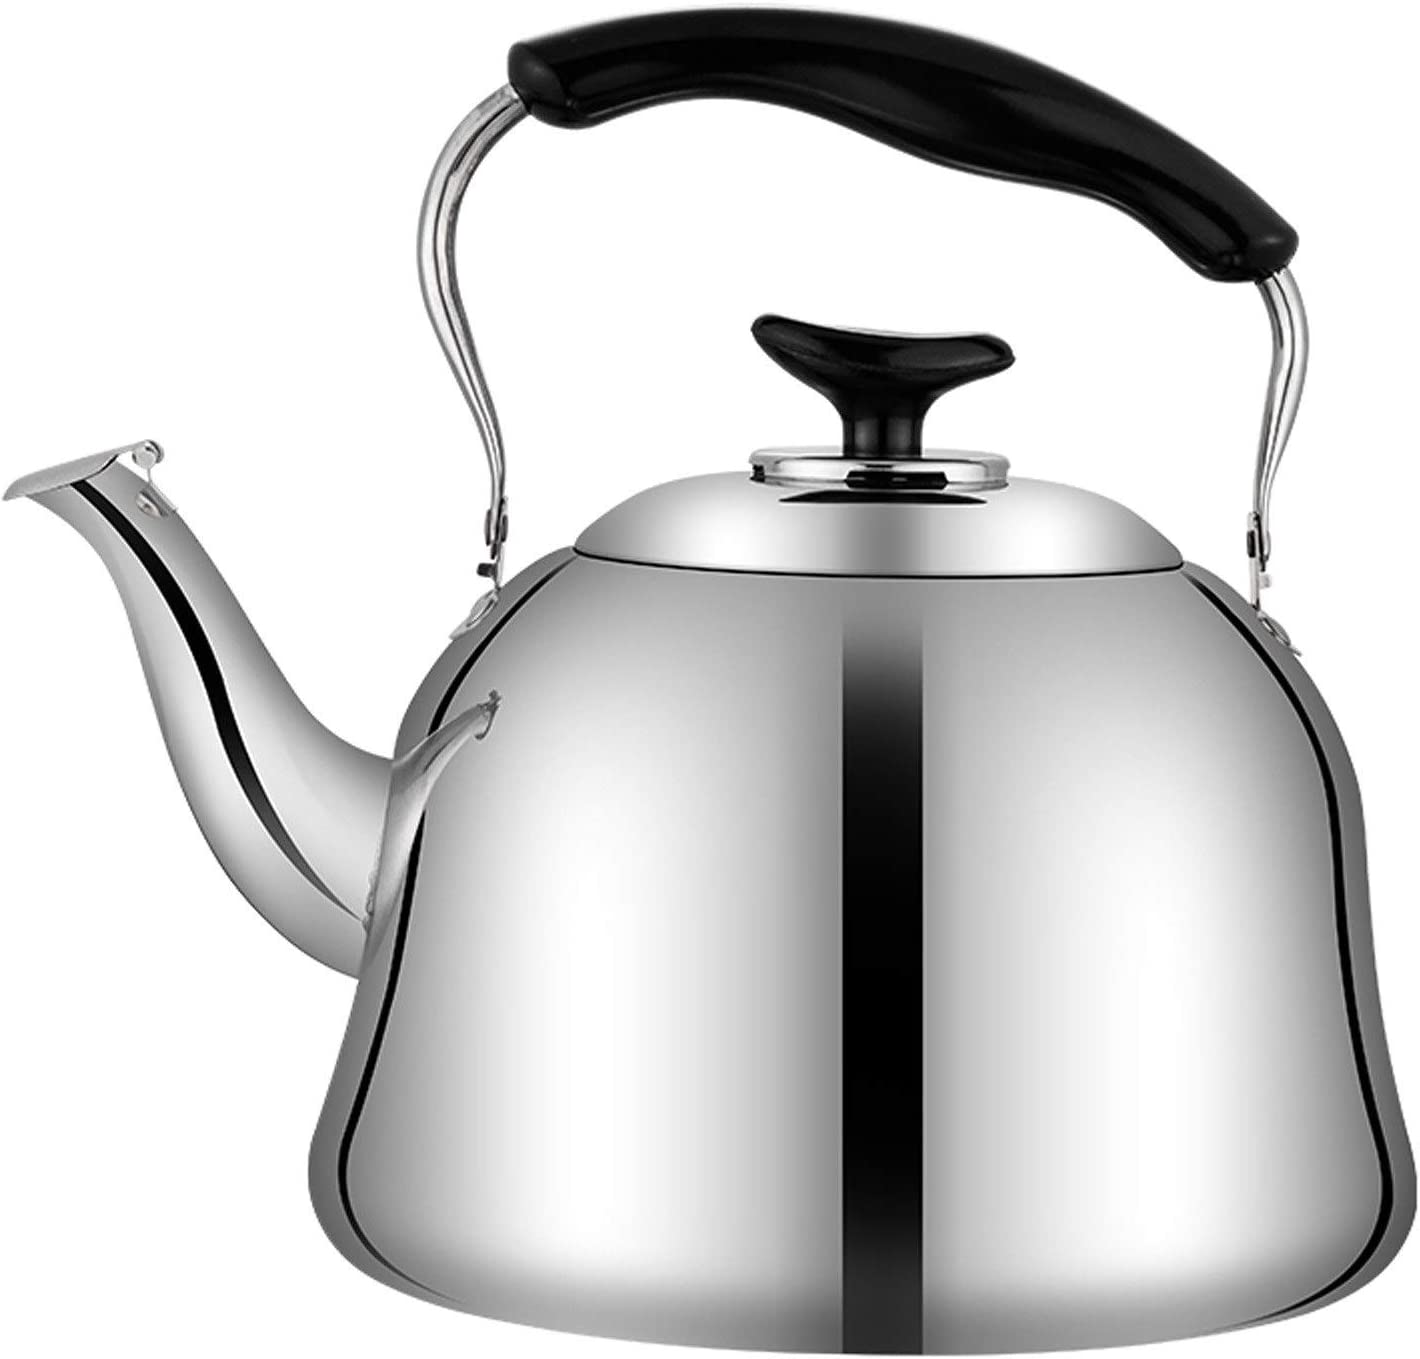 LIU Whistling Kettles Stainless Tea Steel Kettle Outlet ☆ Free Max 79% OFF Shipping Ergon